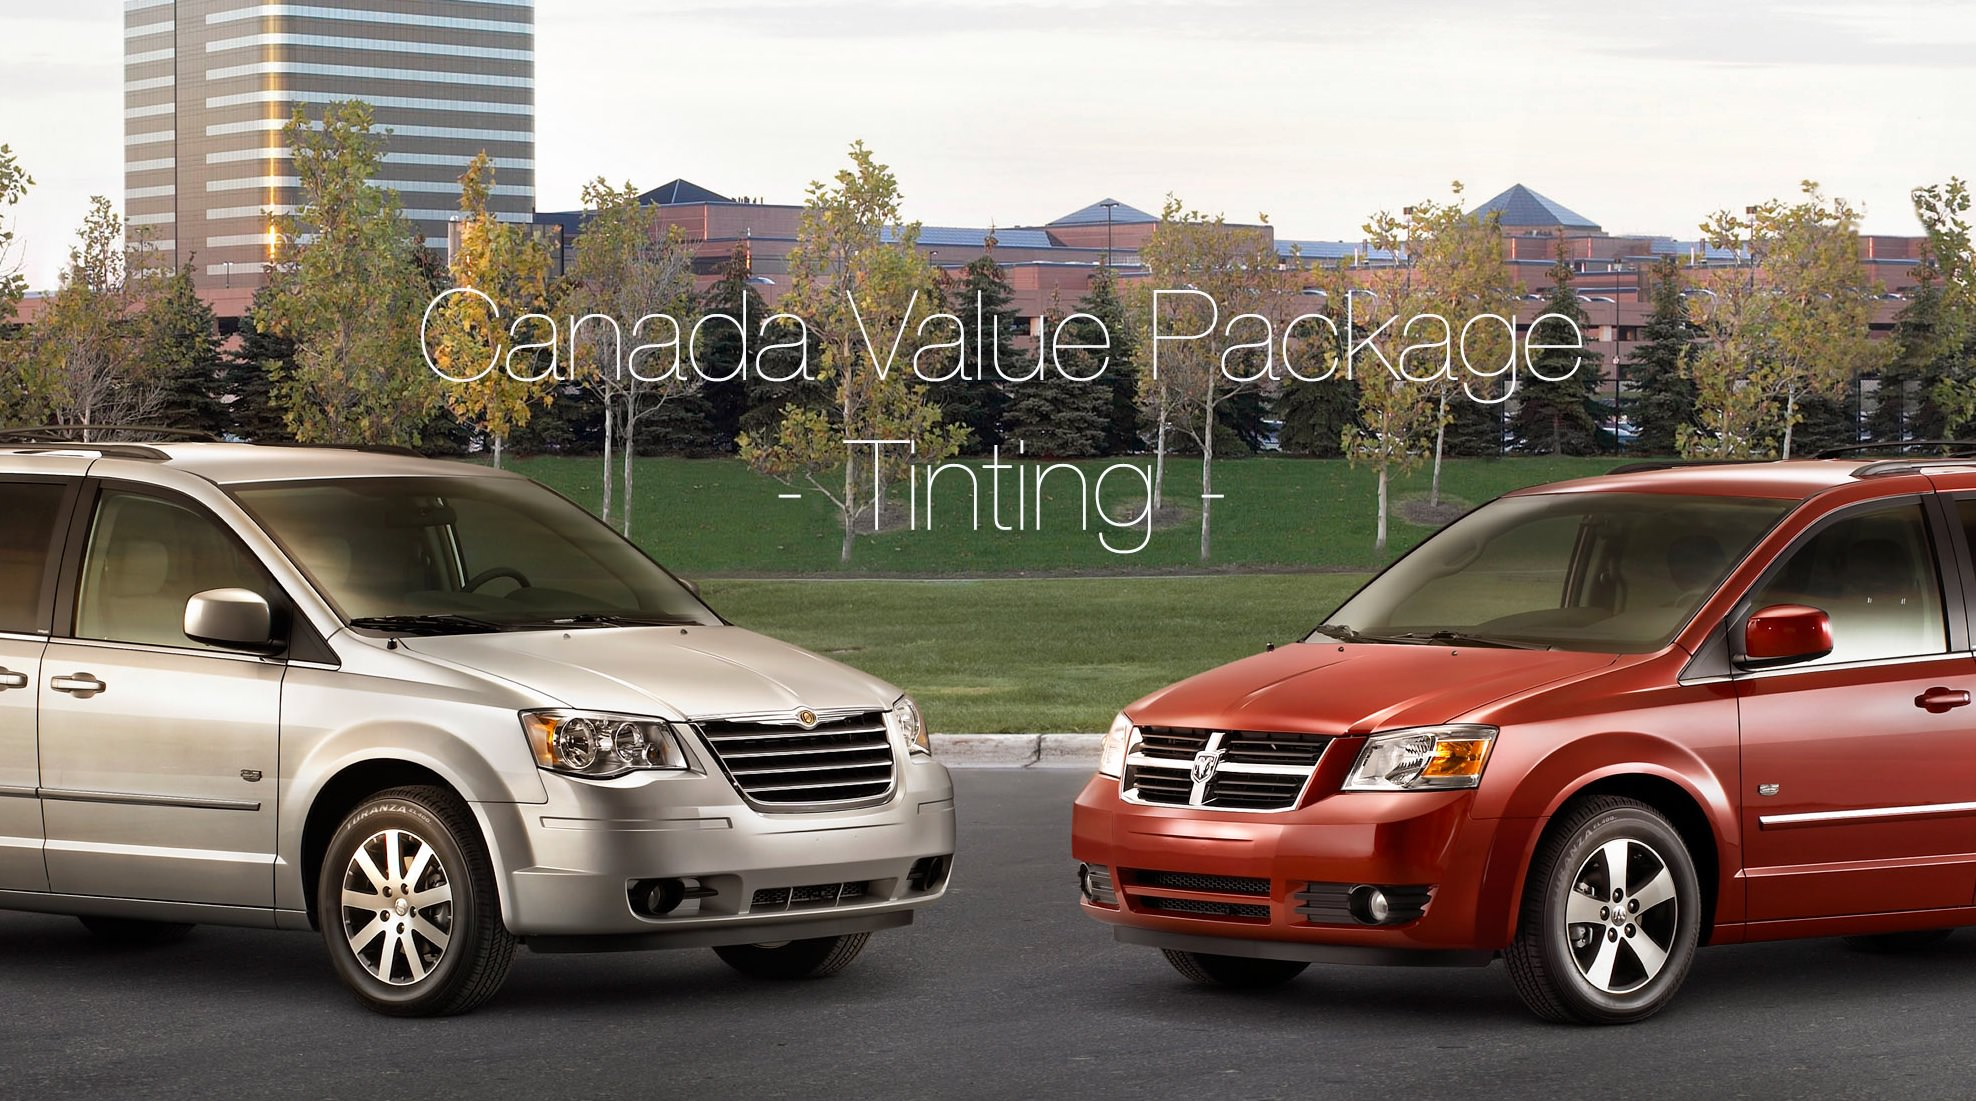 Canada Value Package: Tinting